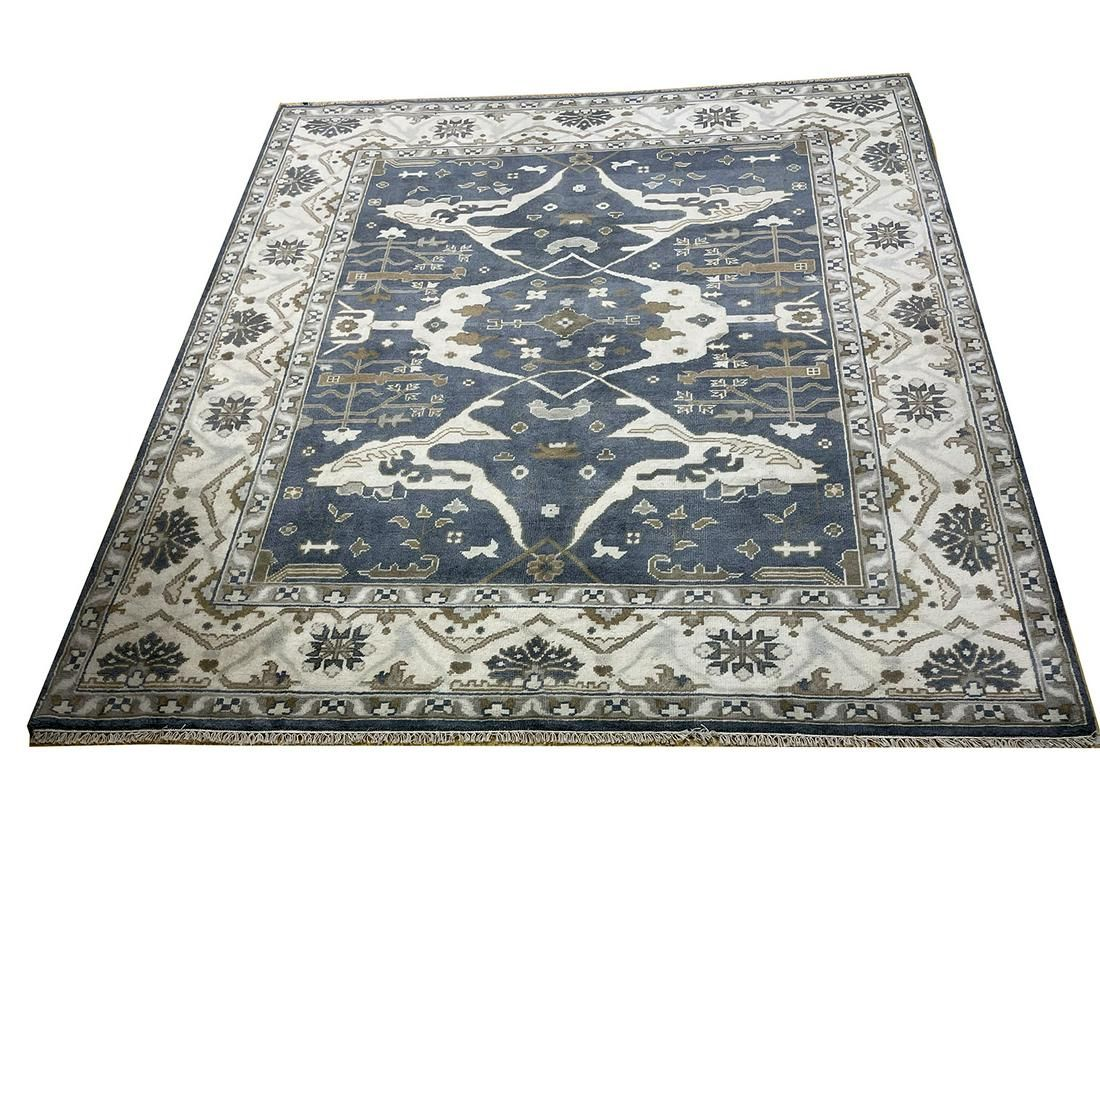 oushak d117 style rug wool pile hand knotted